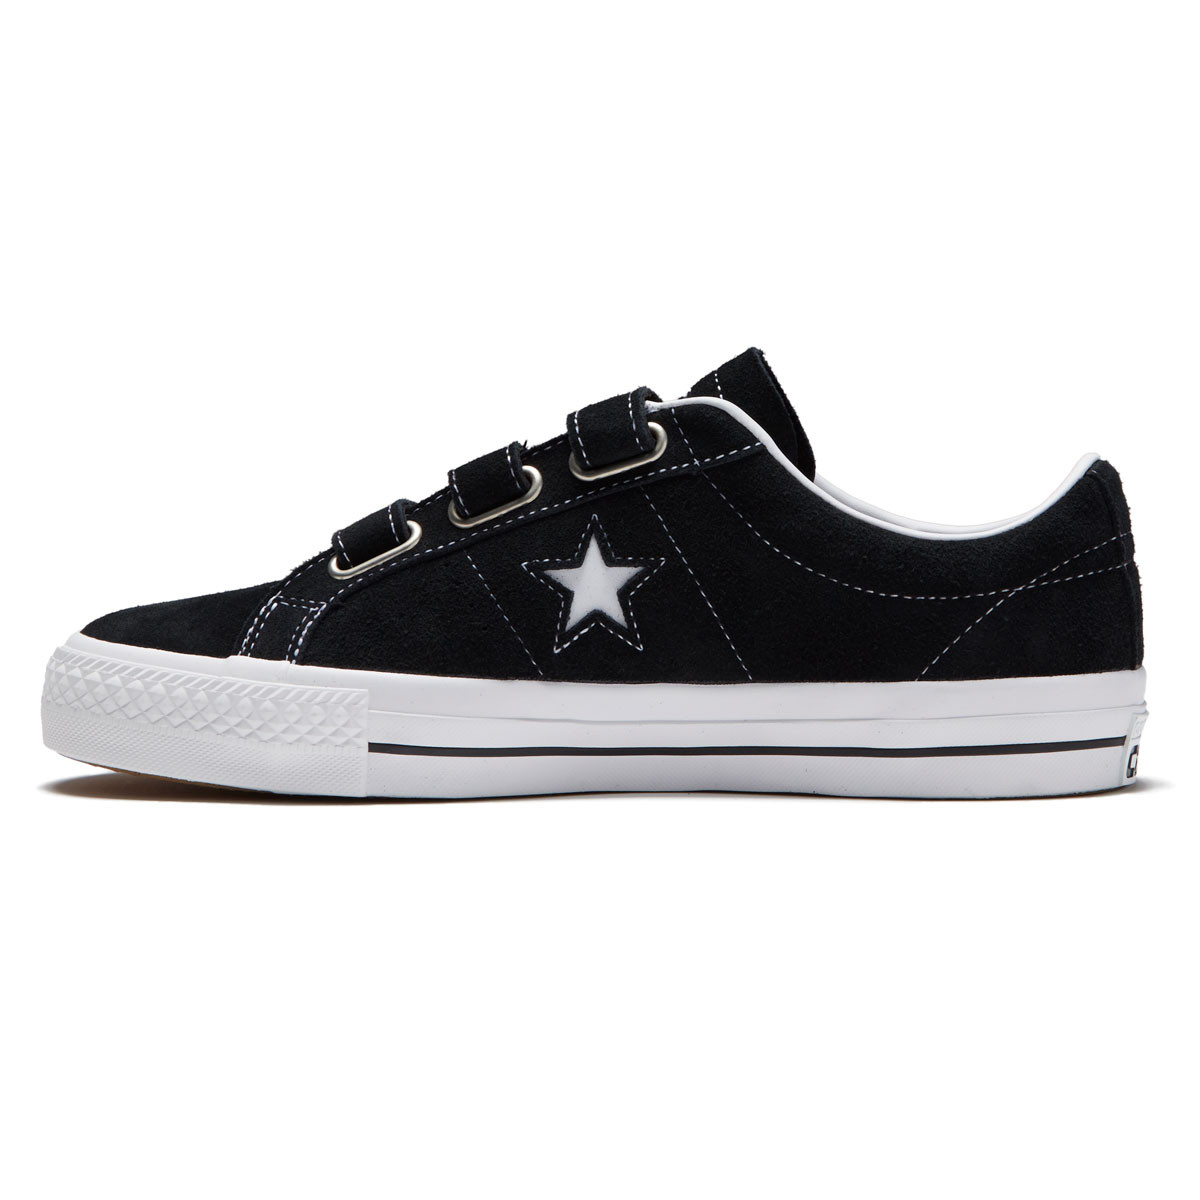 43a84f3901f273 Converse One Star Pro 3V Shoes - Black Pomegranate Red White - 10.0